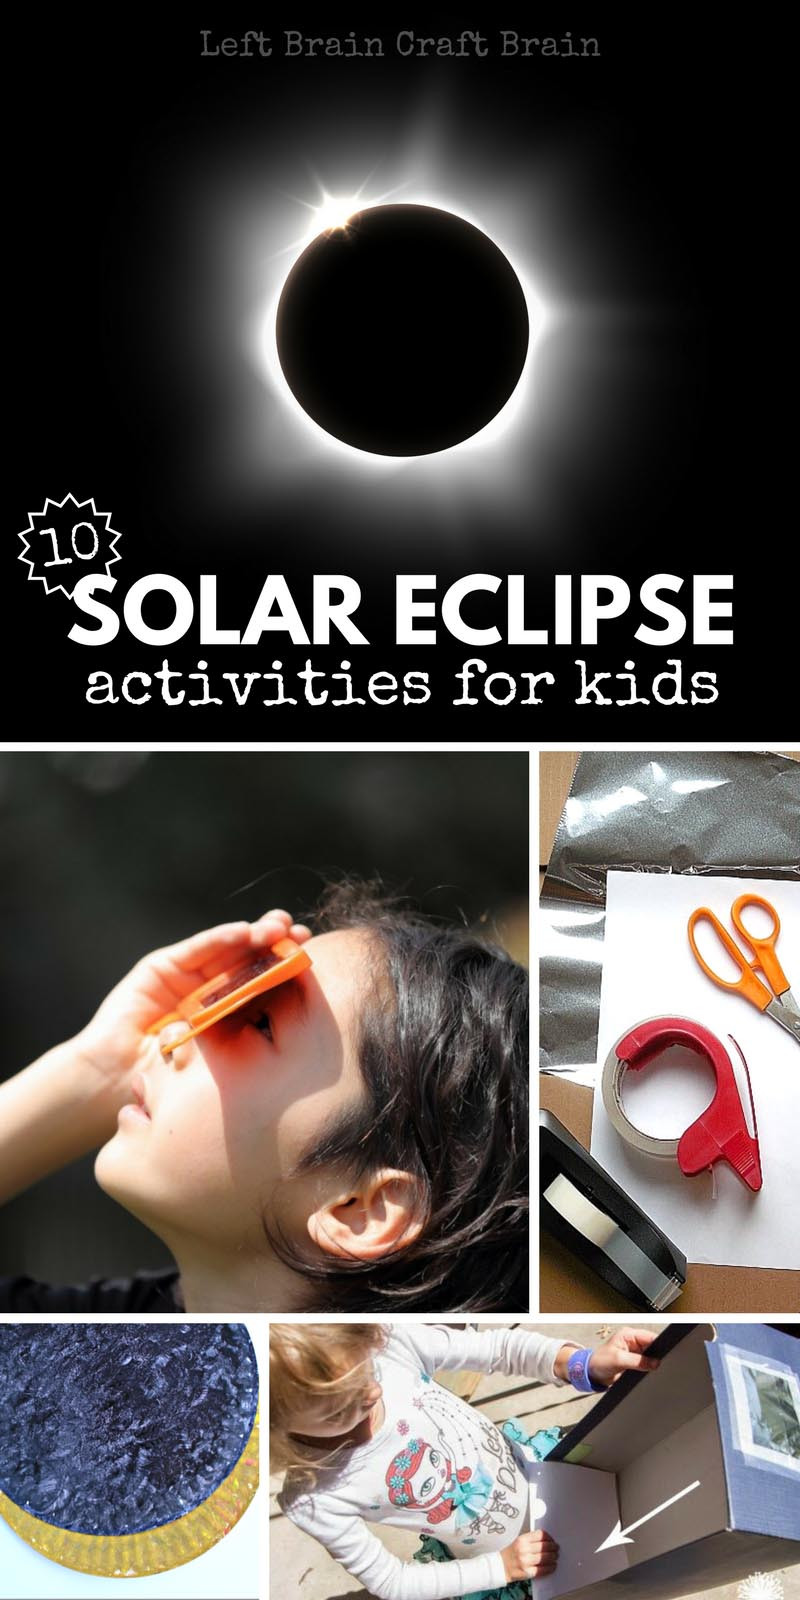 Eclipse Worksheets for Middle School 10 solar Eclipse Activities for Kids Left Brain Craft Brain